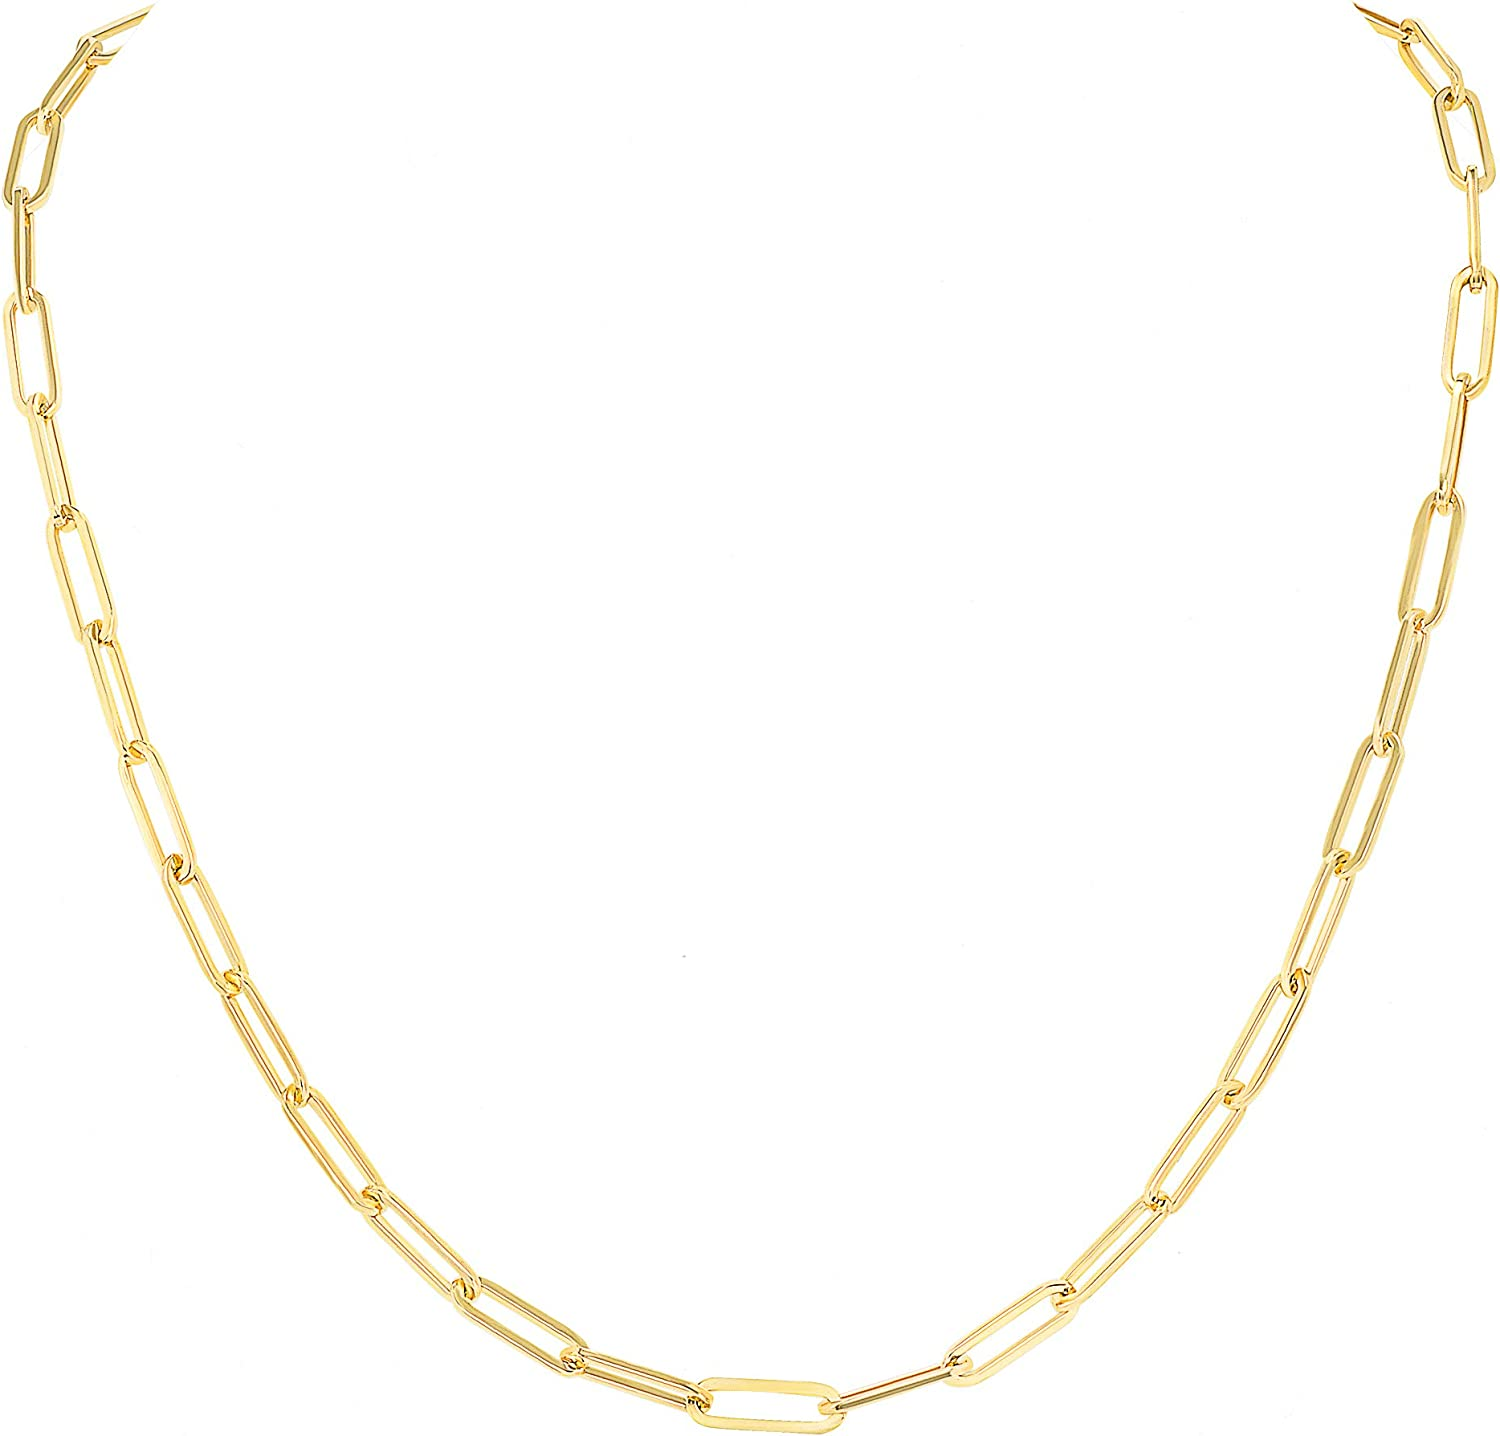 Paperclip Chain Necklace 14k Gold – Real Yellow White Rose luxury Jewelry Pendant – Nice Women and Girls Gift - Available in Your Choice of Length 16'' to 36'' - Wide 4MM - Lobster Clasp